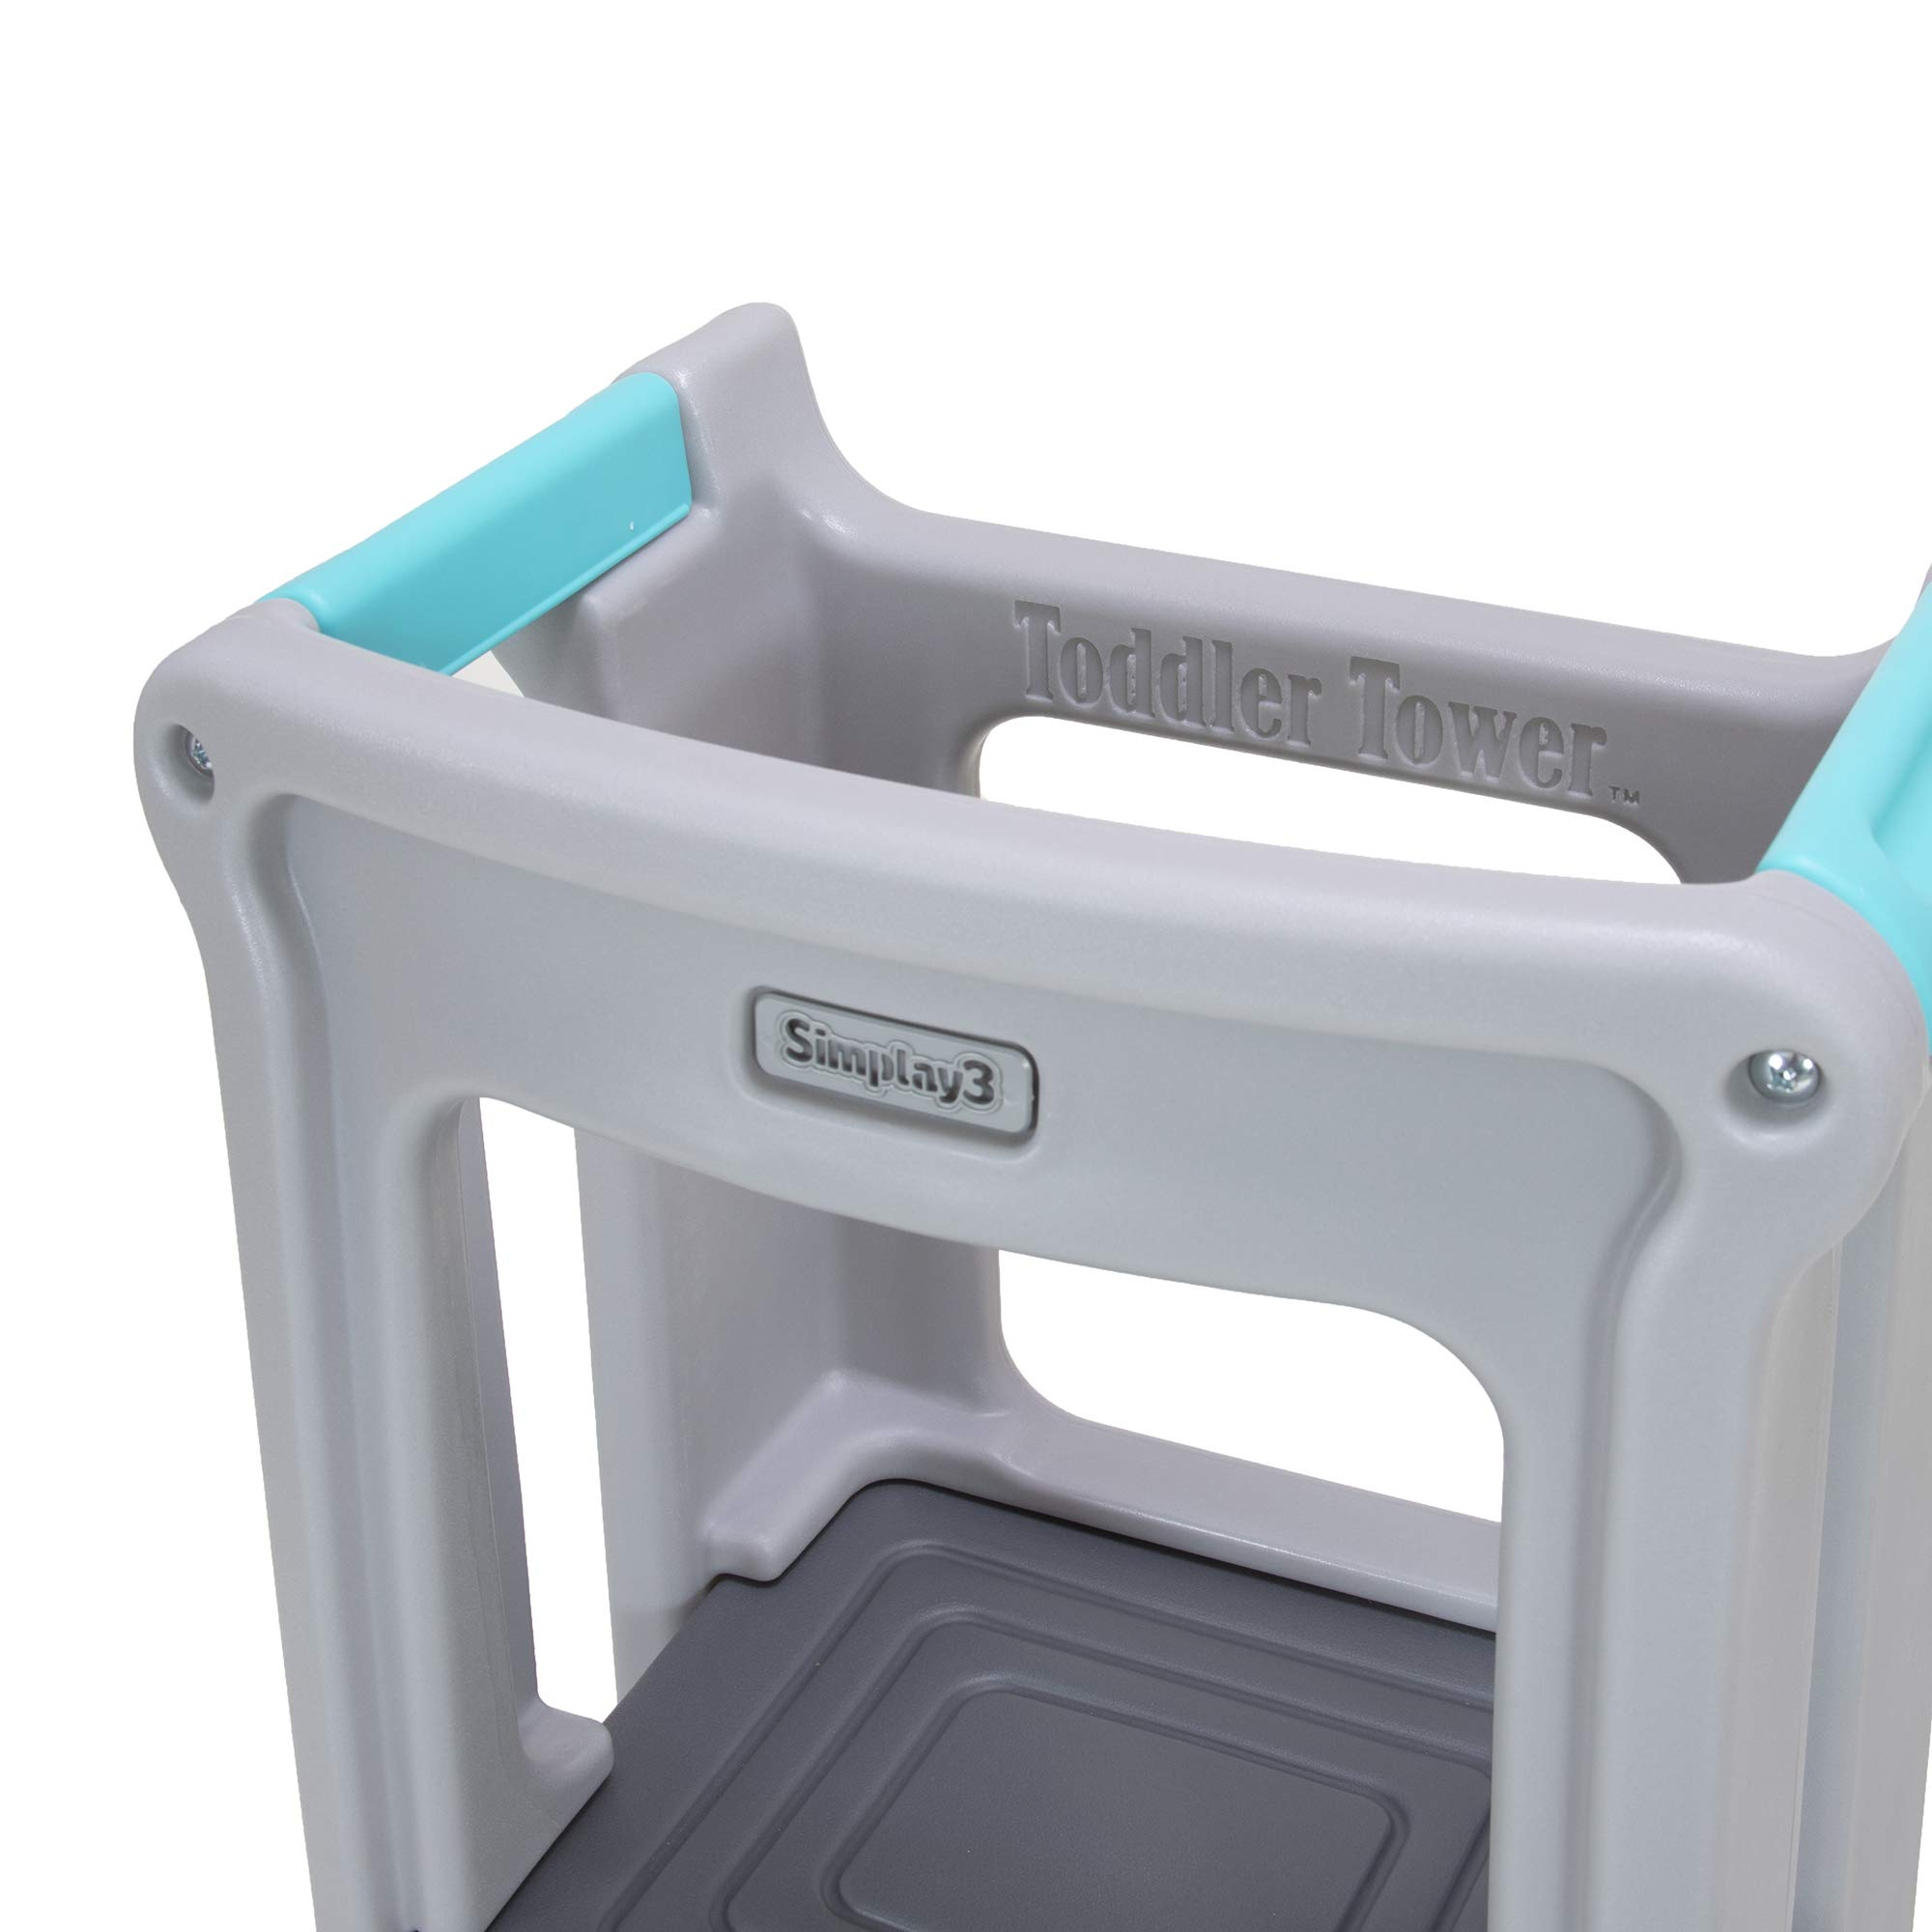 Simplay3 Toddler Tower Childrens Step Stool with Three Adjustable Heights, Gray by Simplay3 (Image #8)